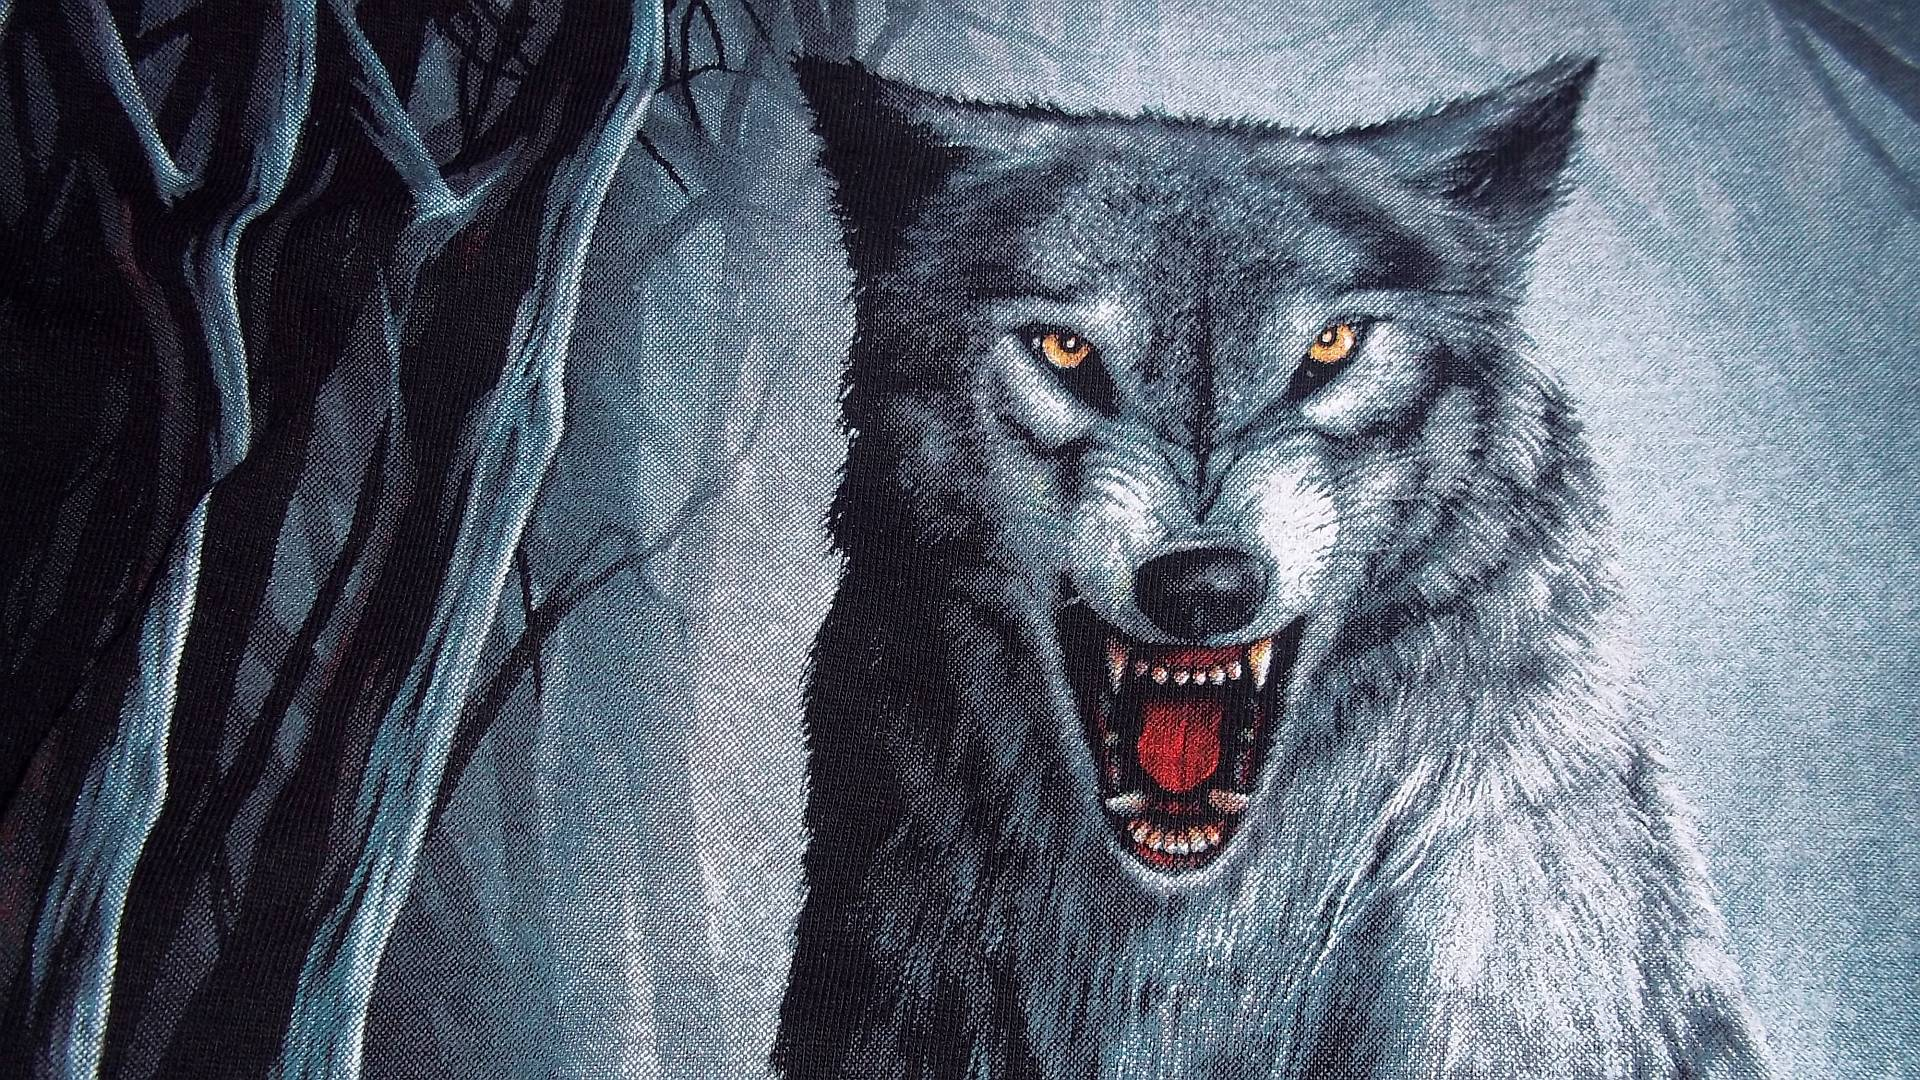 Animal Wolf Wallpaper 1920x1080 px Free Download - Wallpaperest ID ...